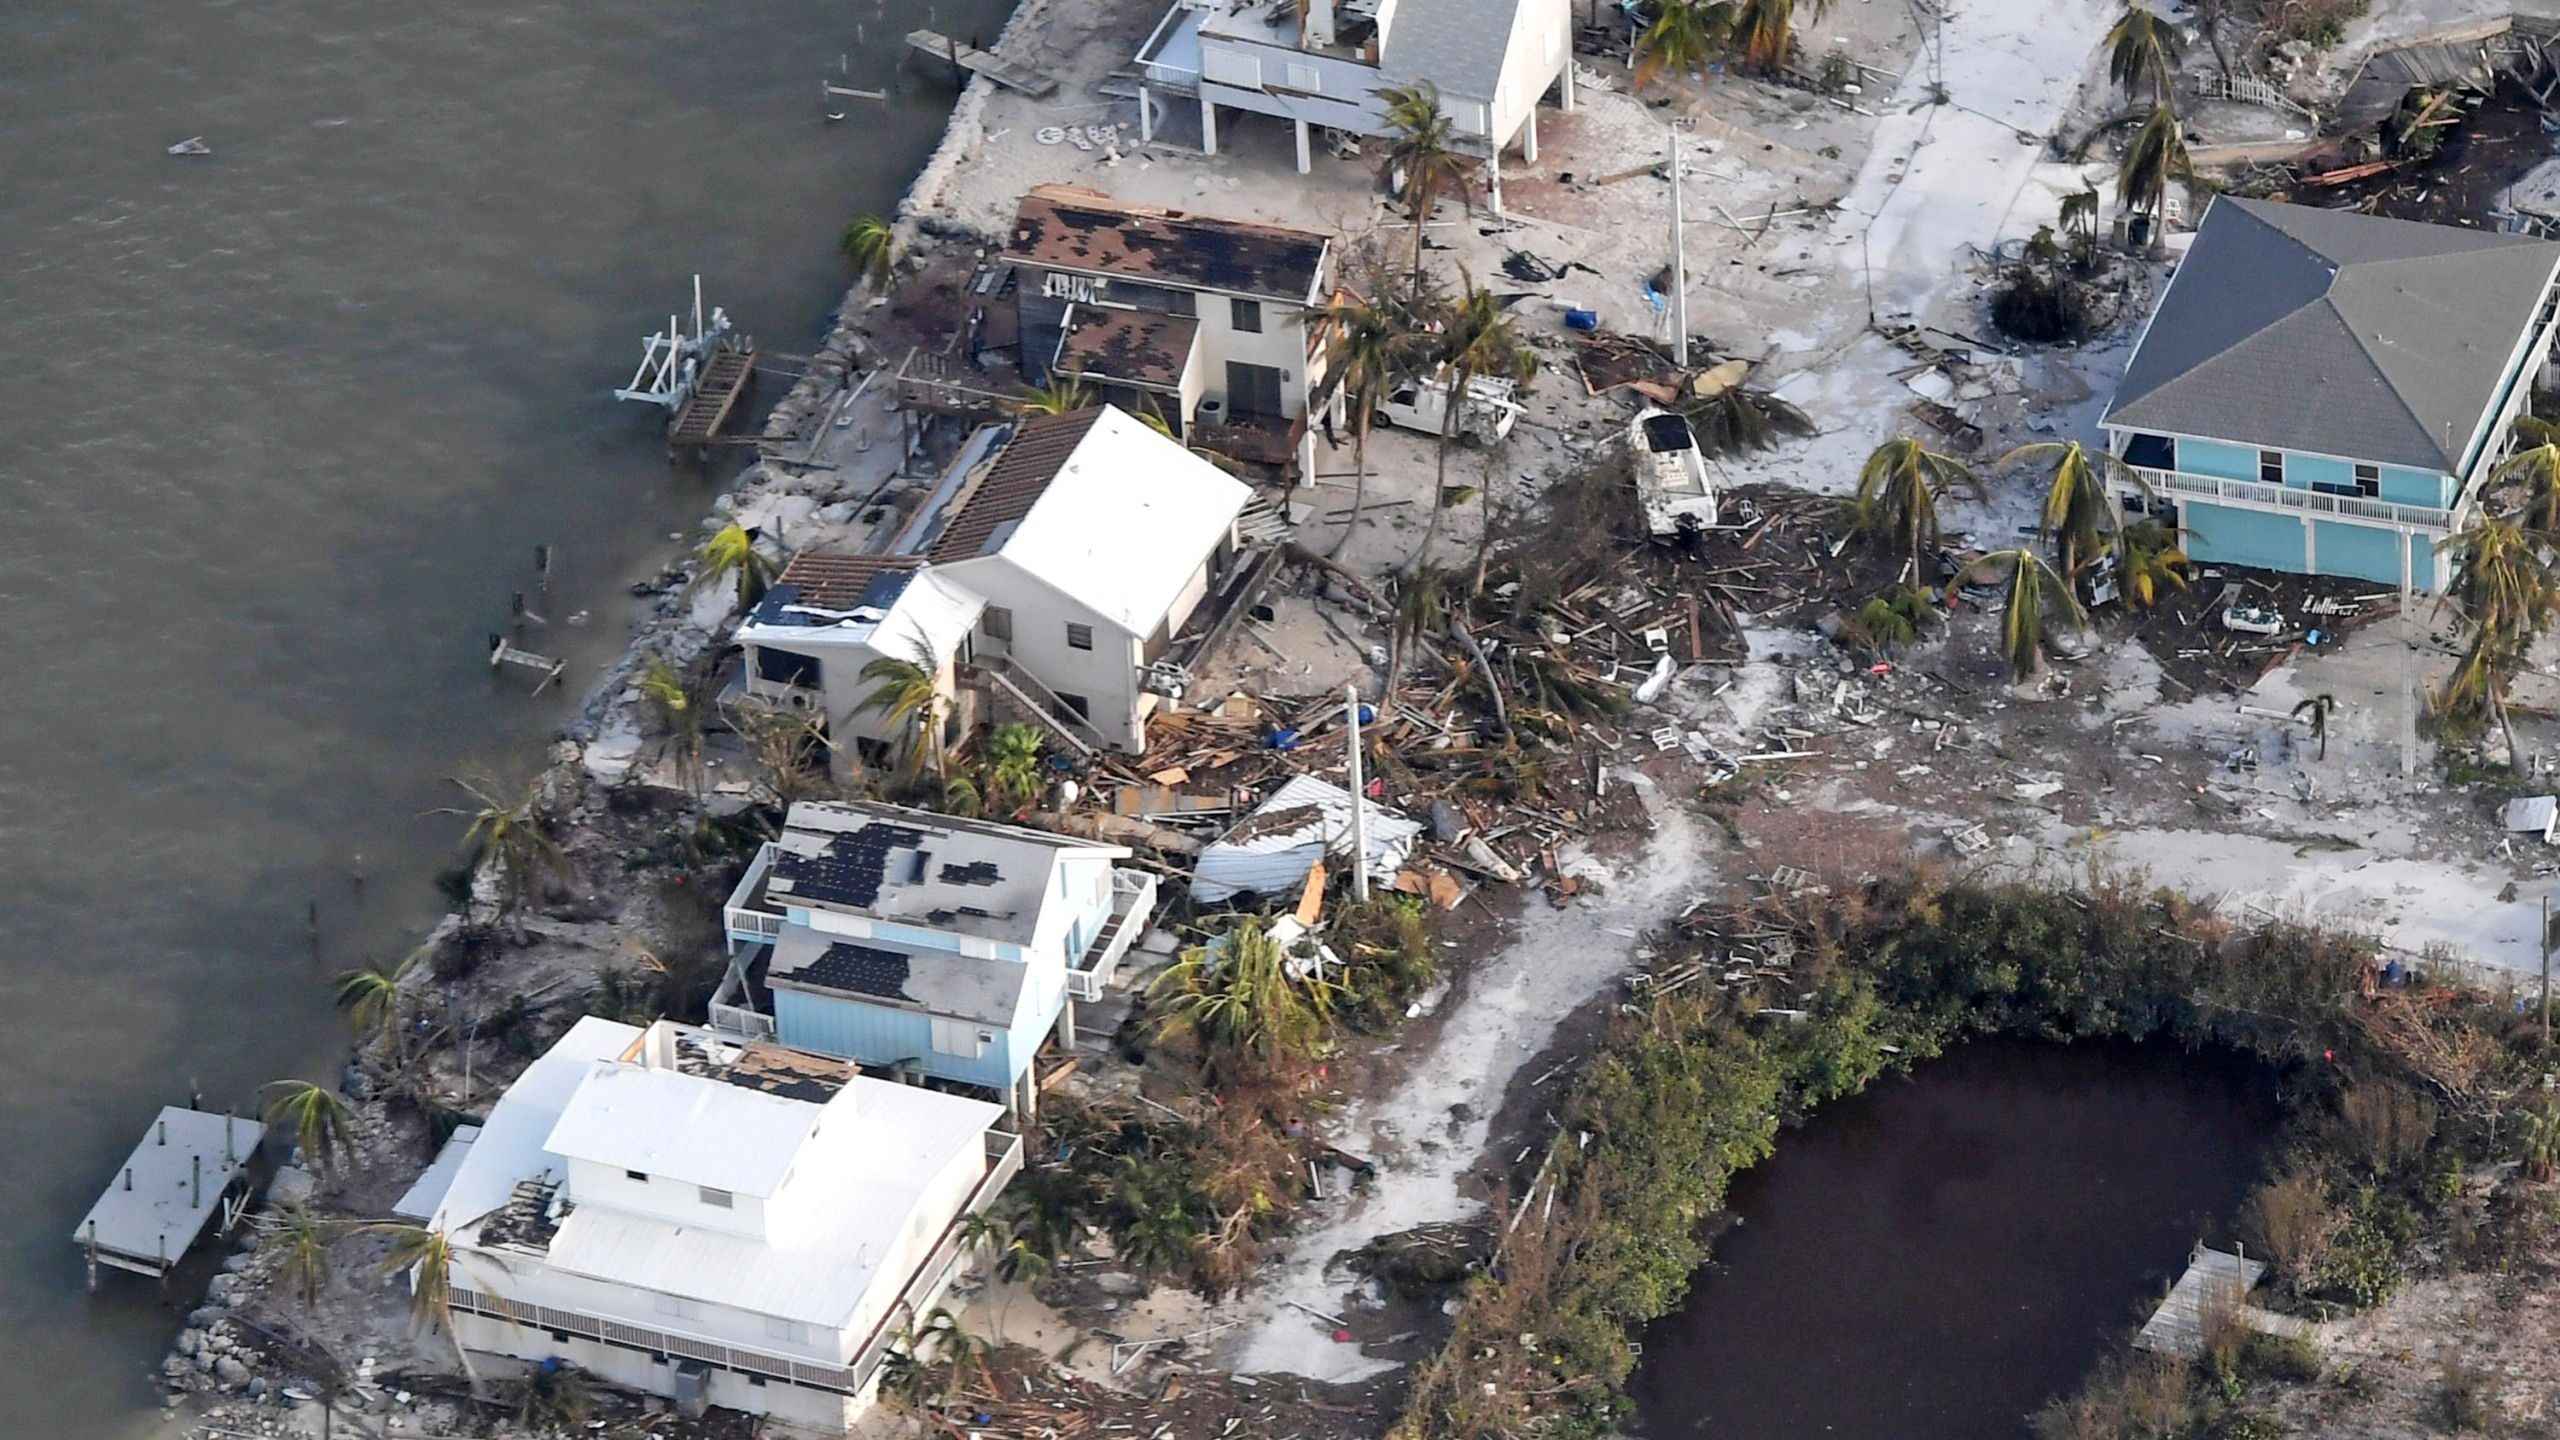 Damaged houses are seen in the aftermath of Hurricane Irma on September 11, 2017 over the Florida Keys, Florida (Credit: Matt McClain -Pool/Getty Images)